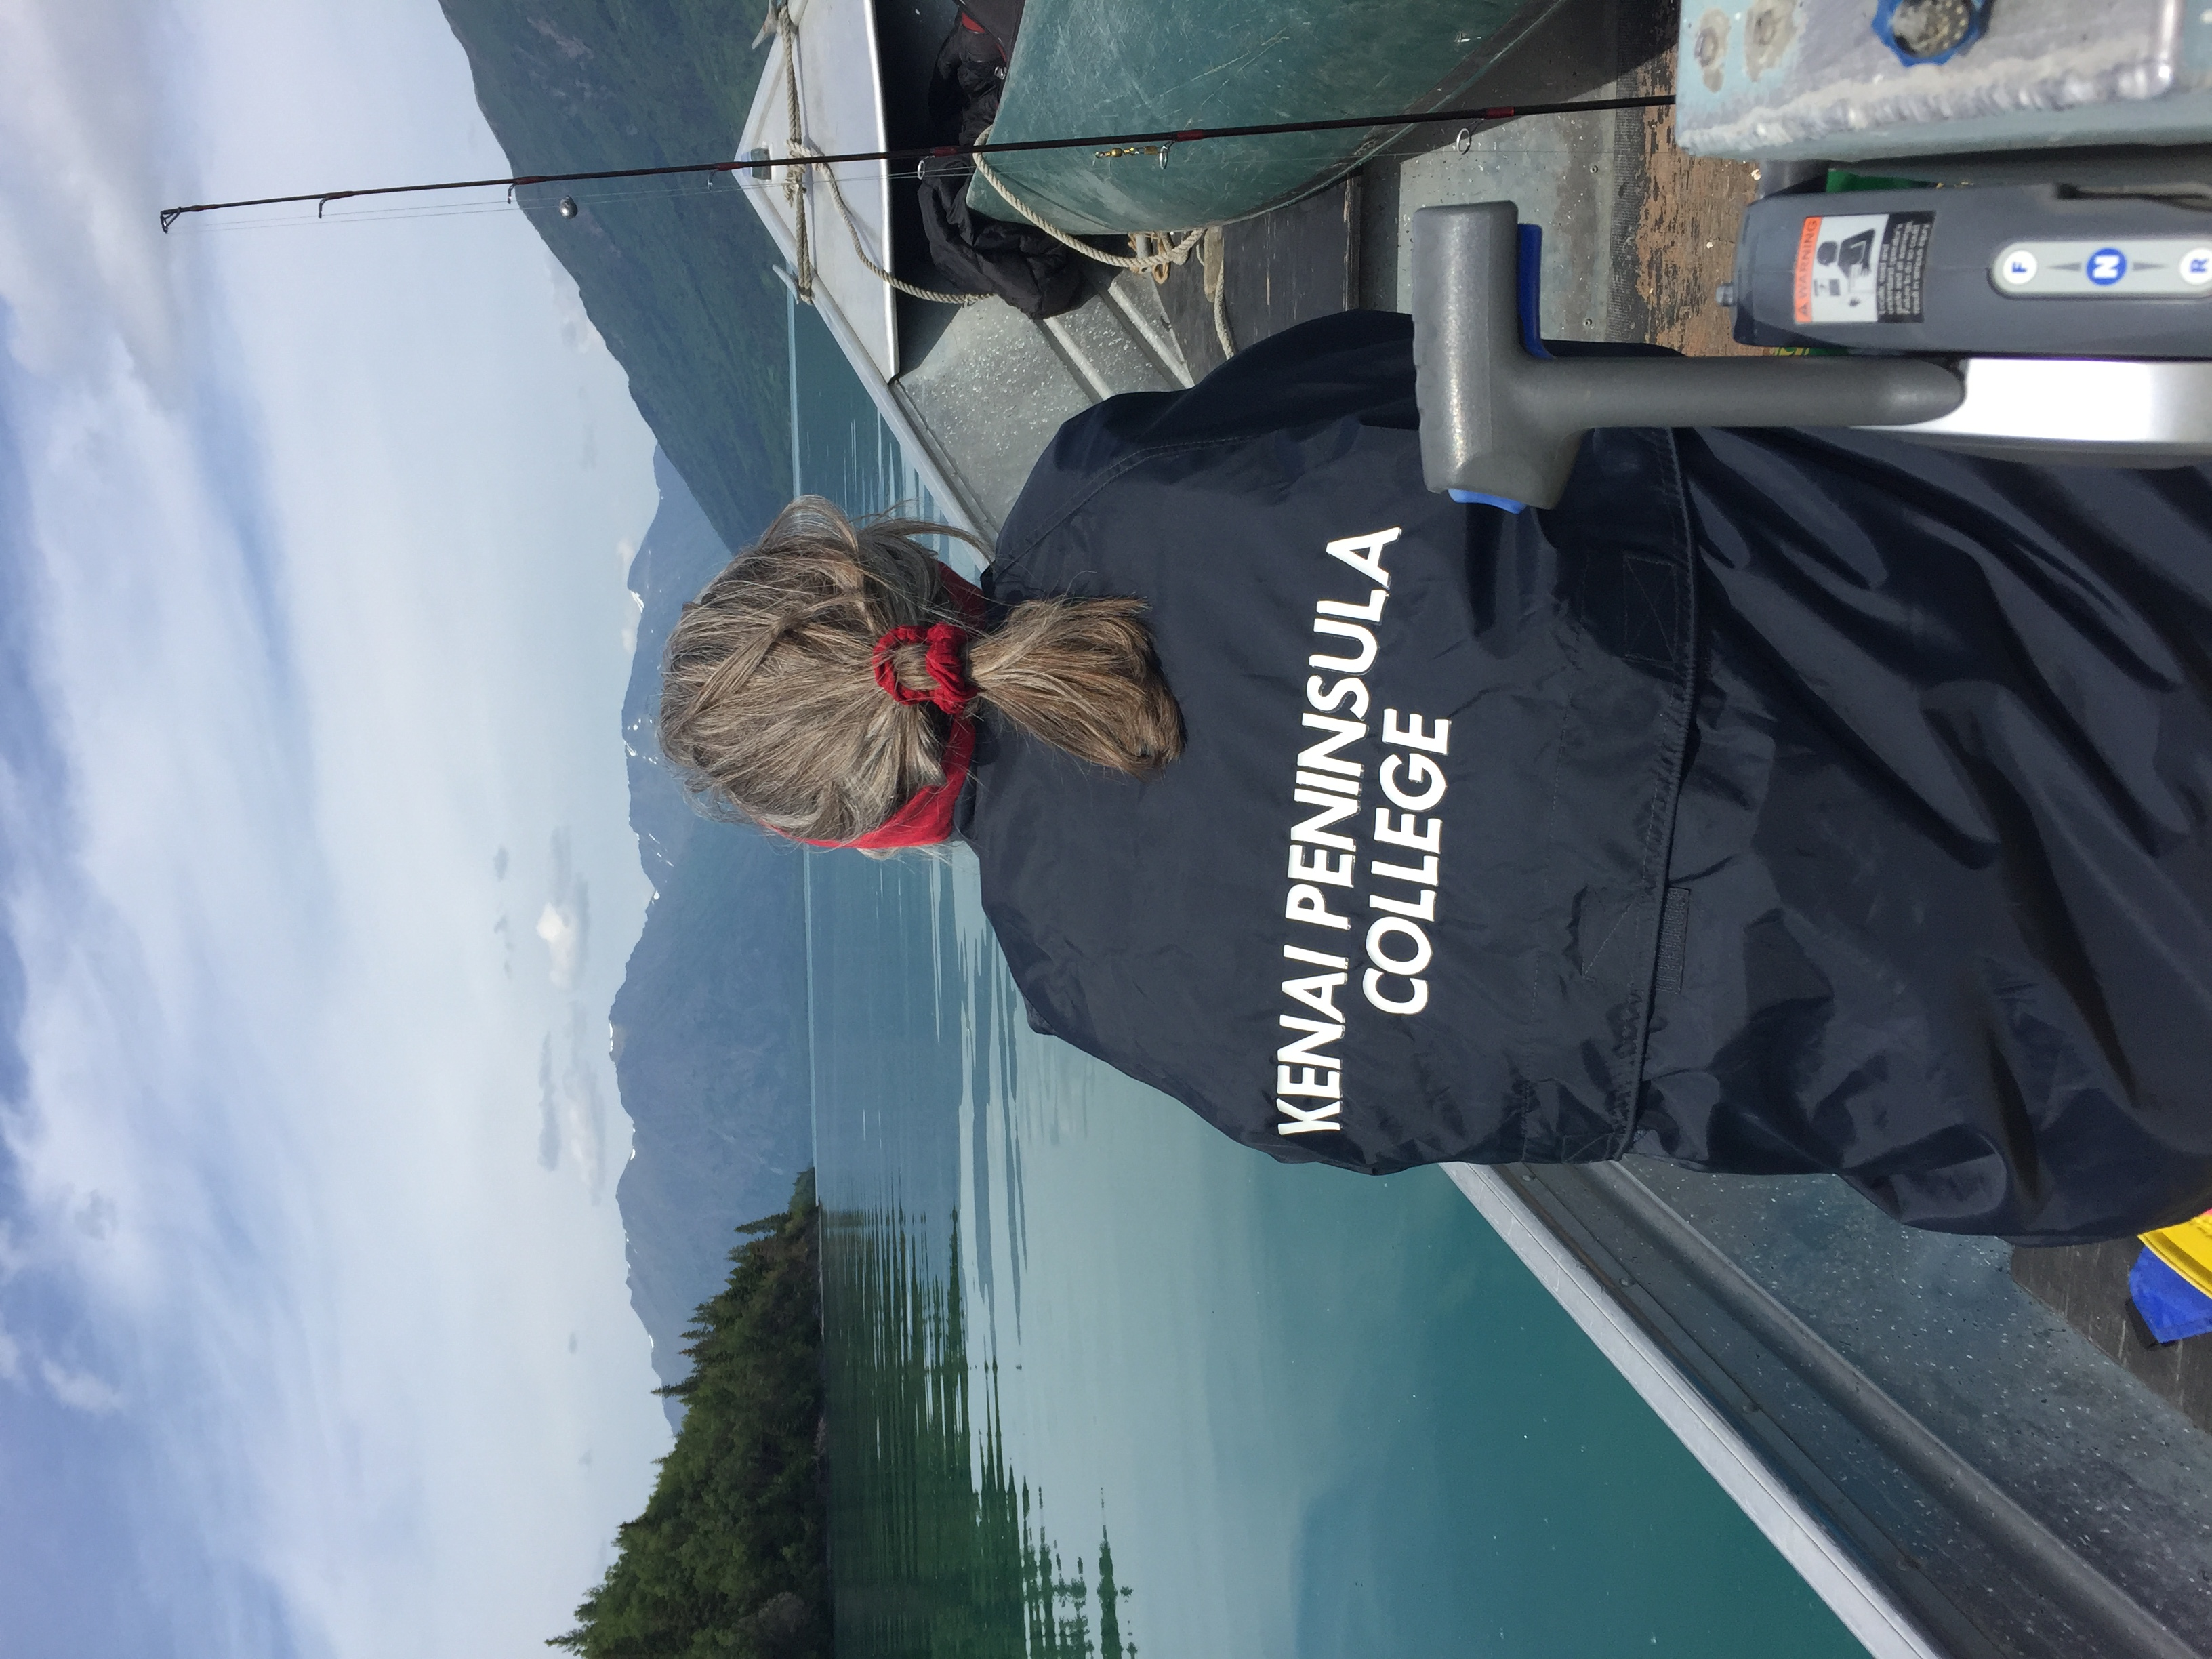 Person wearing a Kenai Peninsula College coat riding a boat on a lake with Moutians in the background